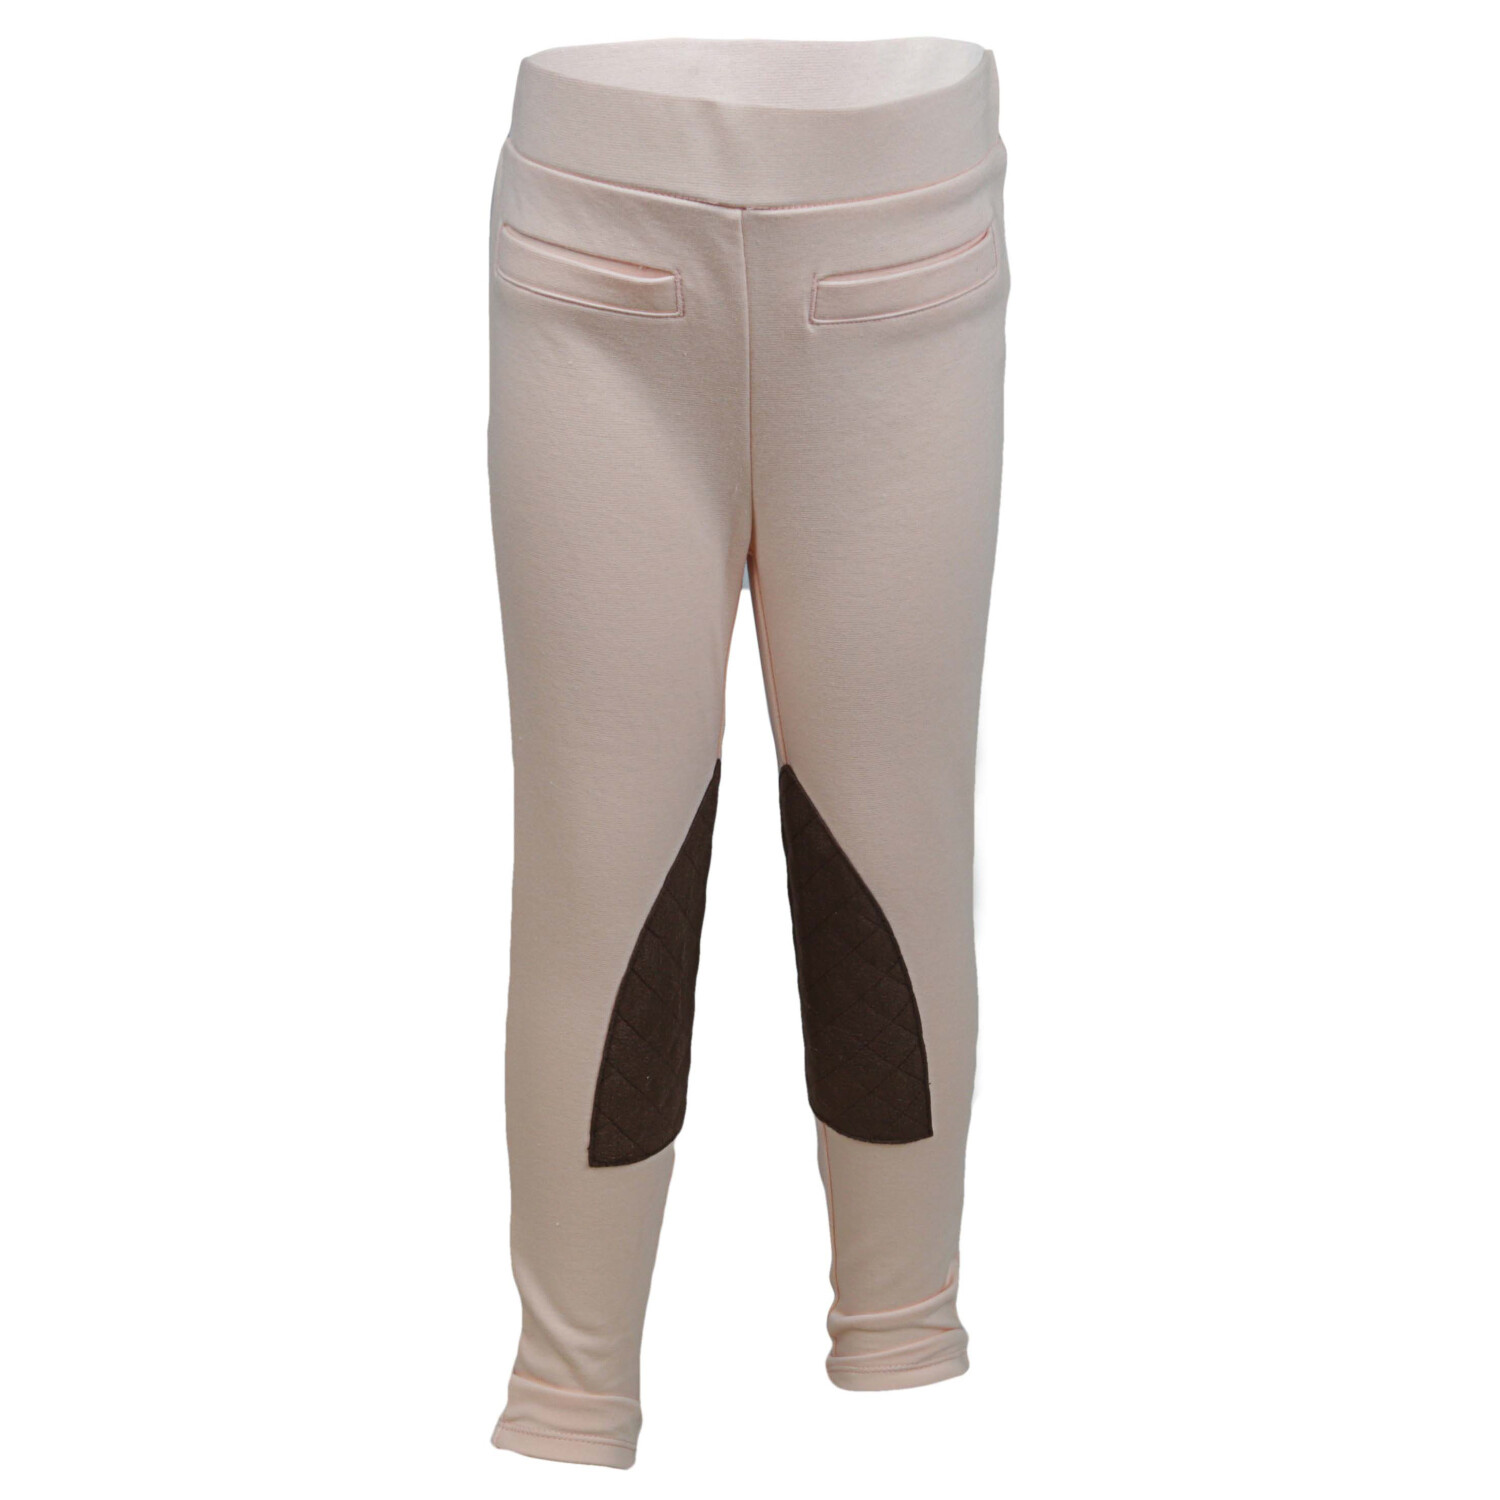 Janie And Jack Girl's Blush Riding Pant Pants - 12-18 Months